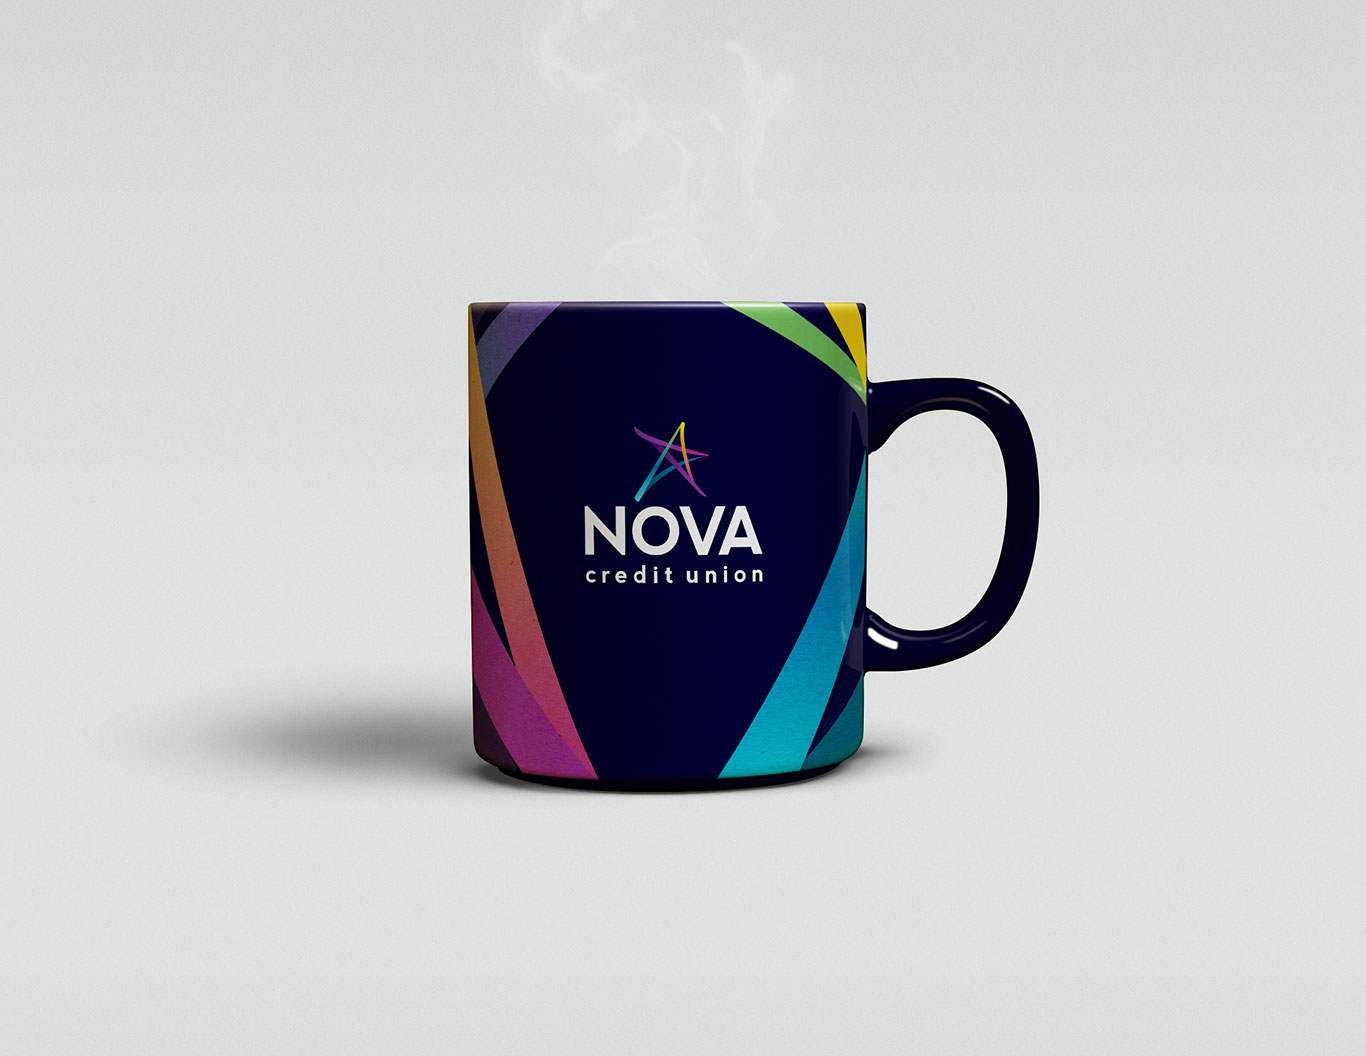 Promotional mug branded to Nova Credit Union.